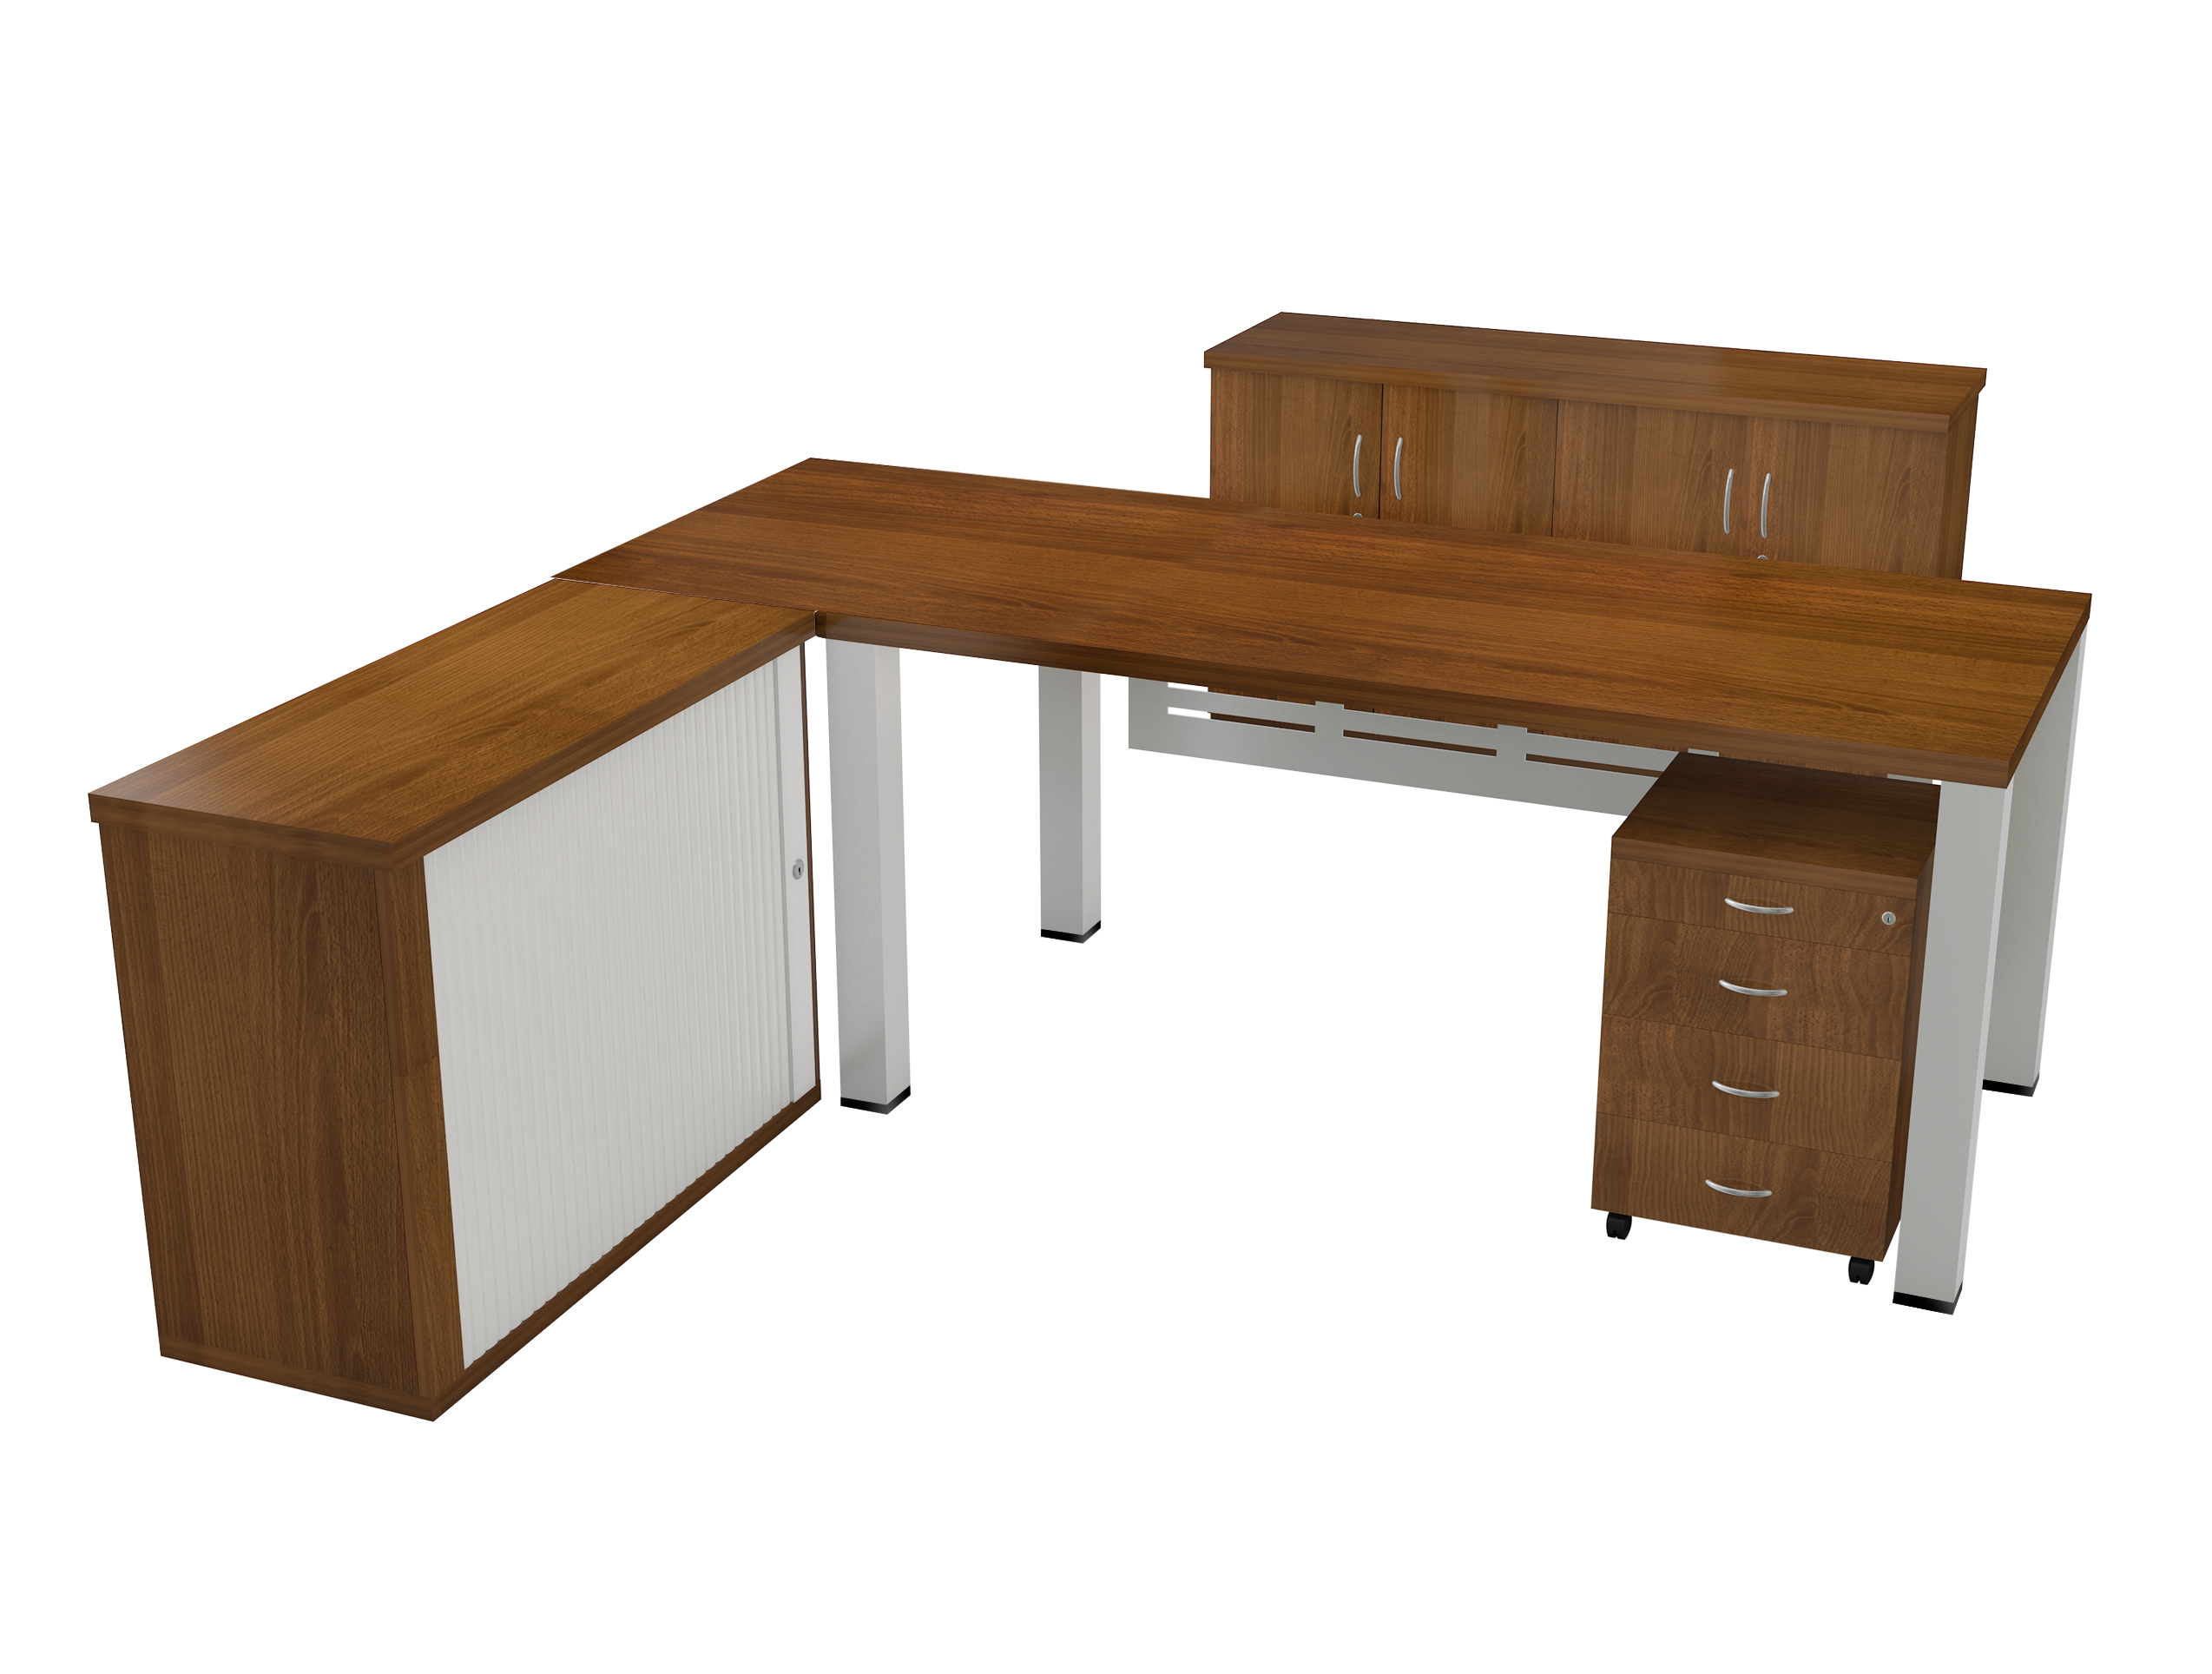 Arizona Desk with Cabinet